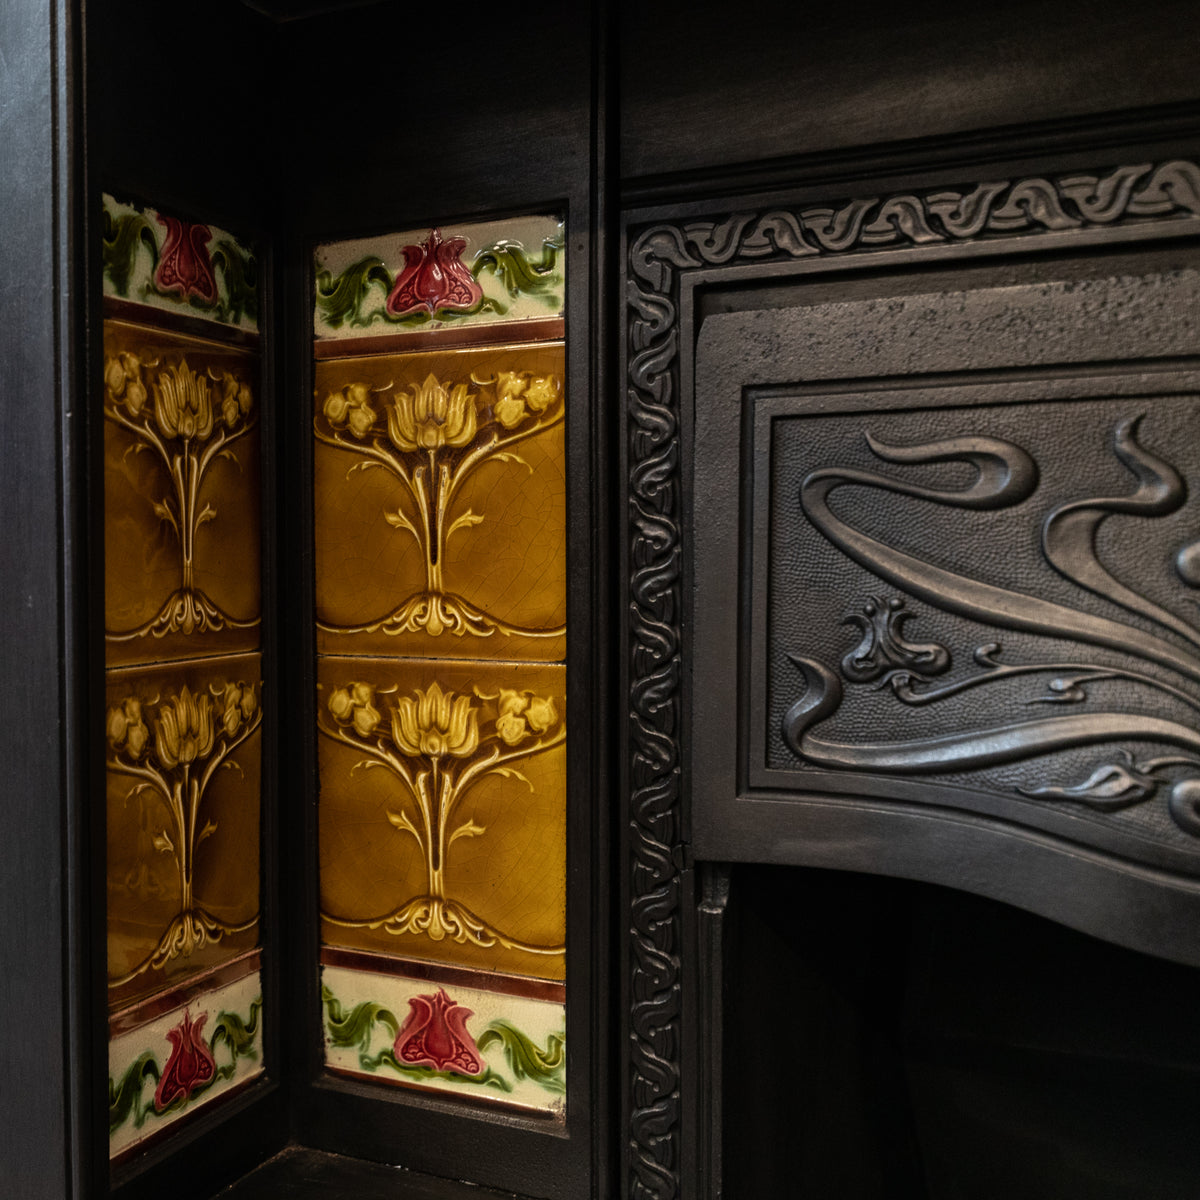 Large Antique Art Nouveau Cast Iron Tiled Fireplace Insert | The Architectural Forum